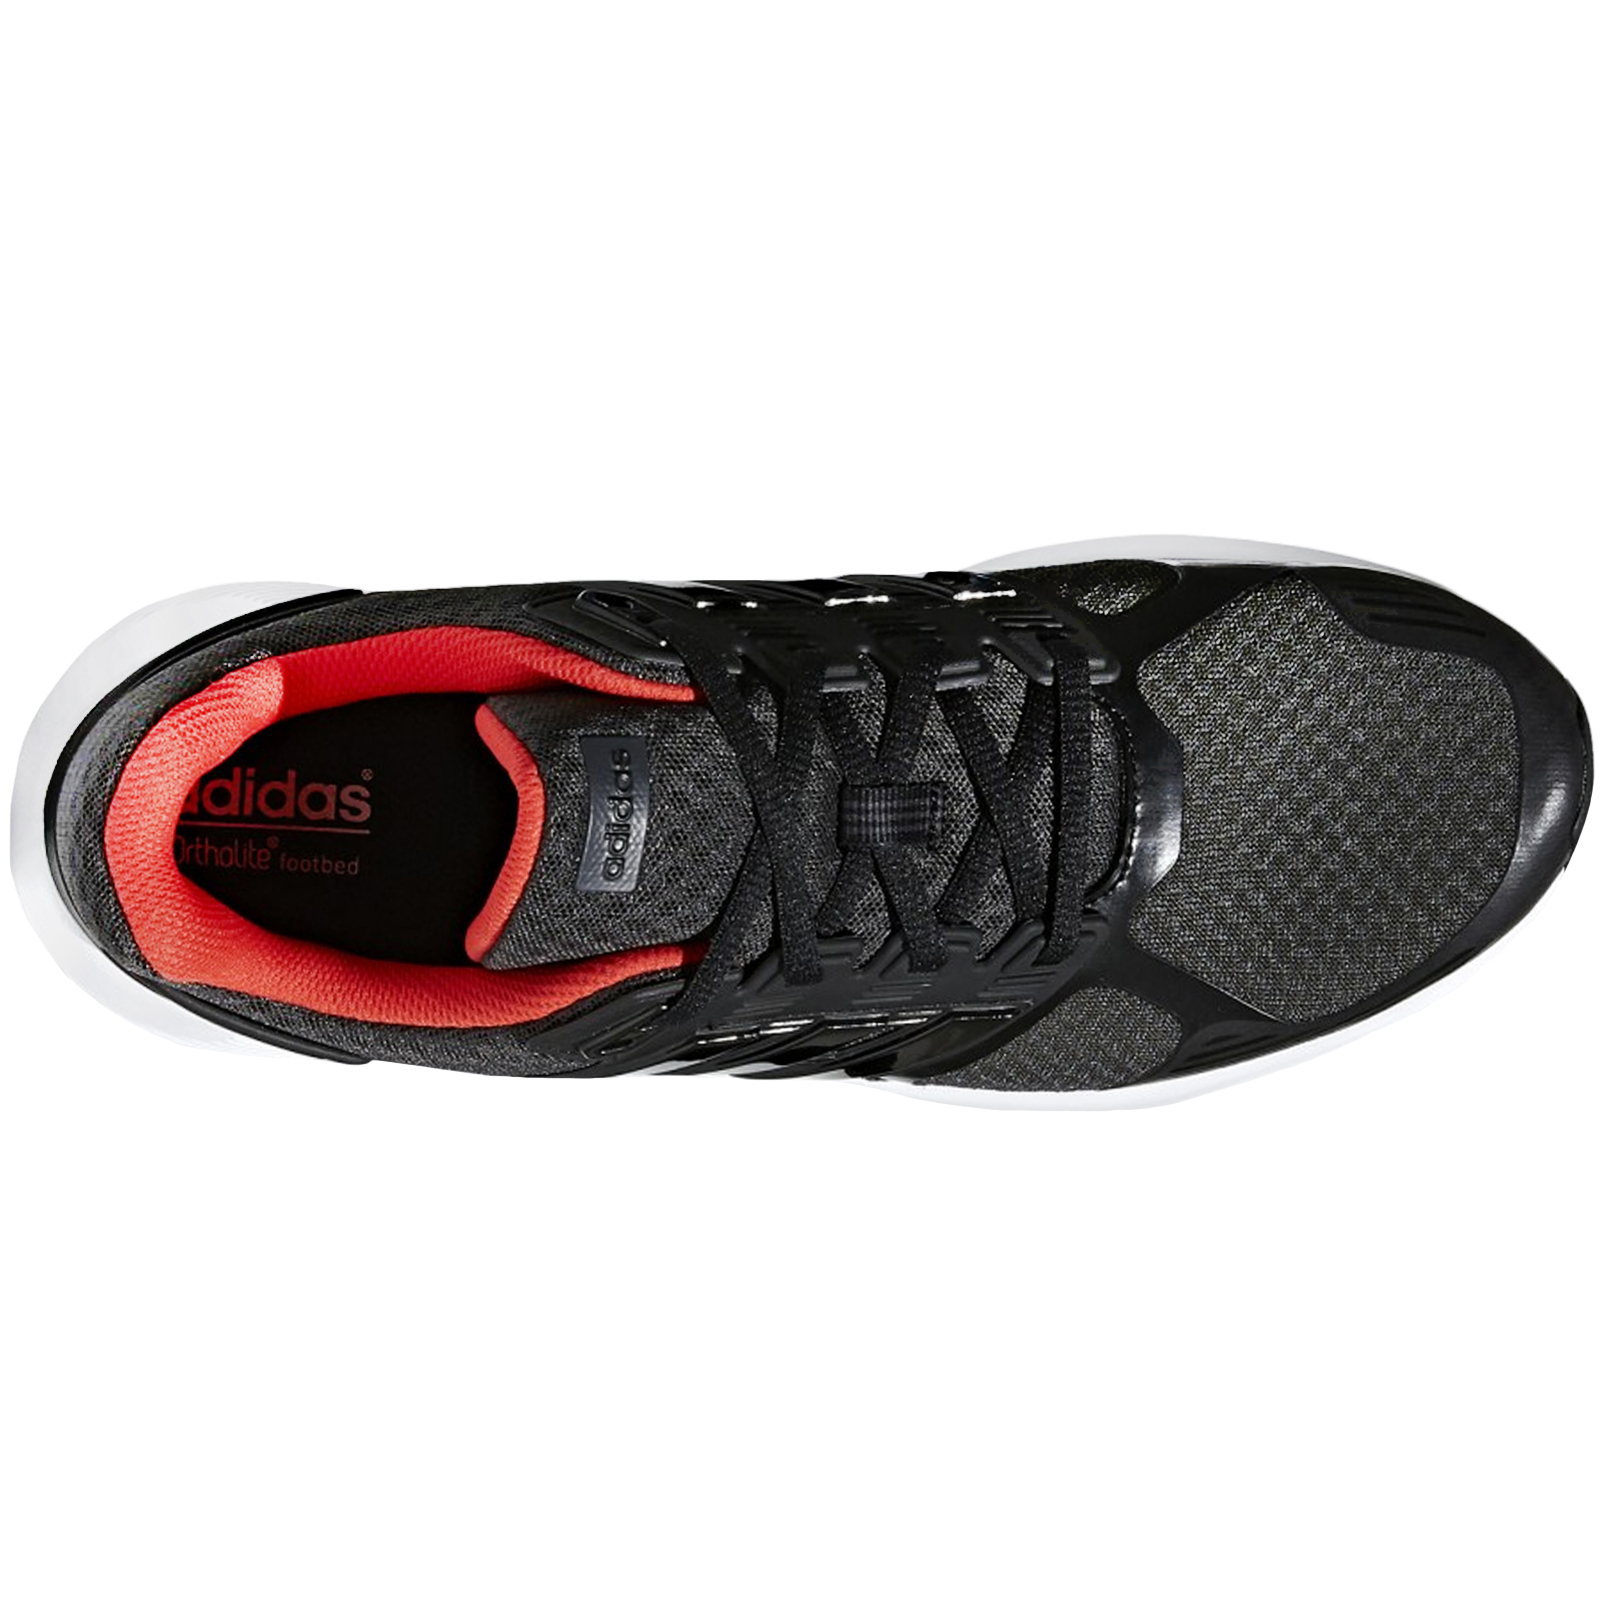 adidas-Performance-Mens-Duramo-8-Lace-Up-Sports-Training-Running-Trainers-Shoes miniatura 4